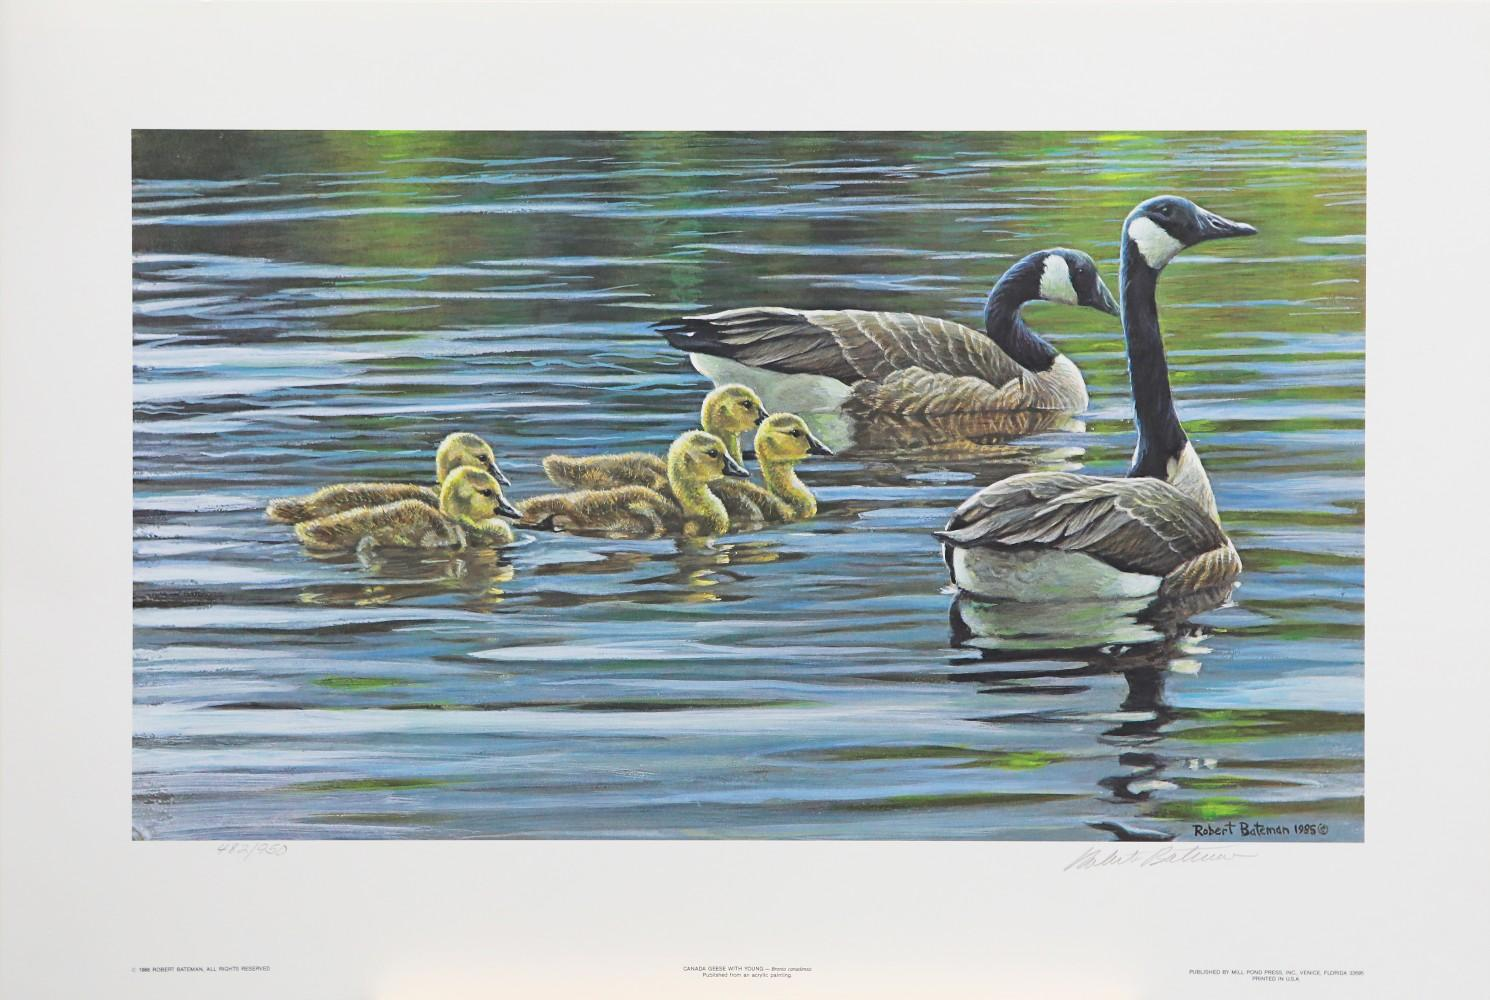 """Robert Bateman's """"Canada Geese With Young"""" Limited Edition Print"""